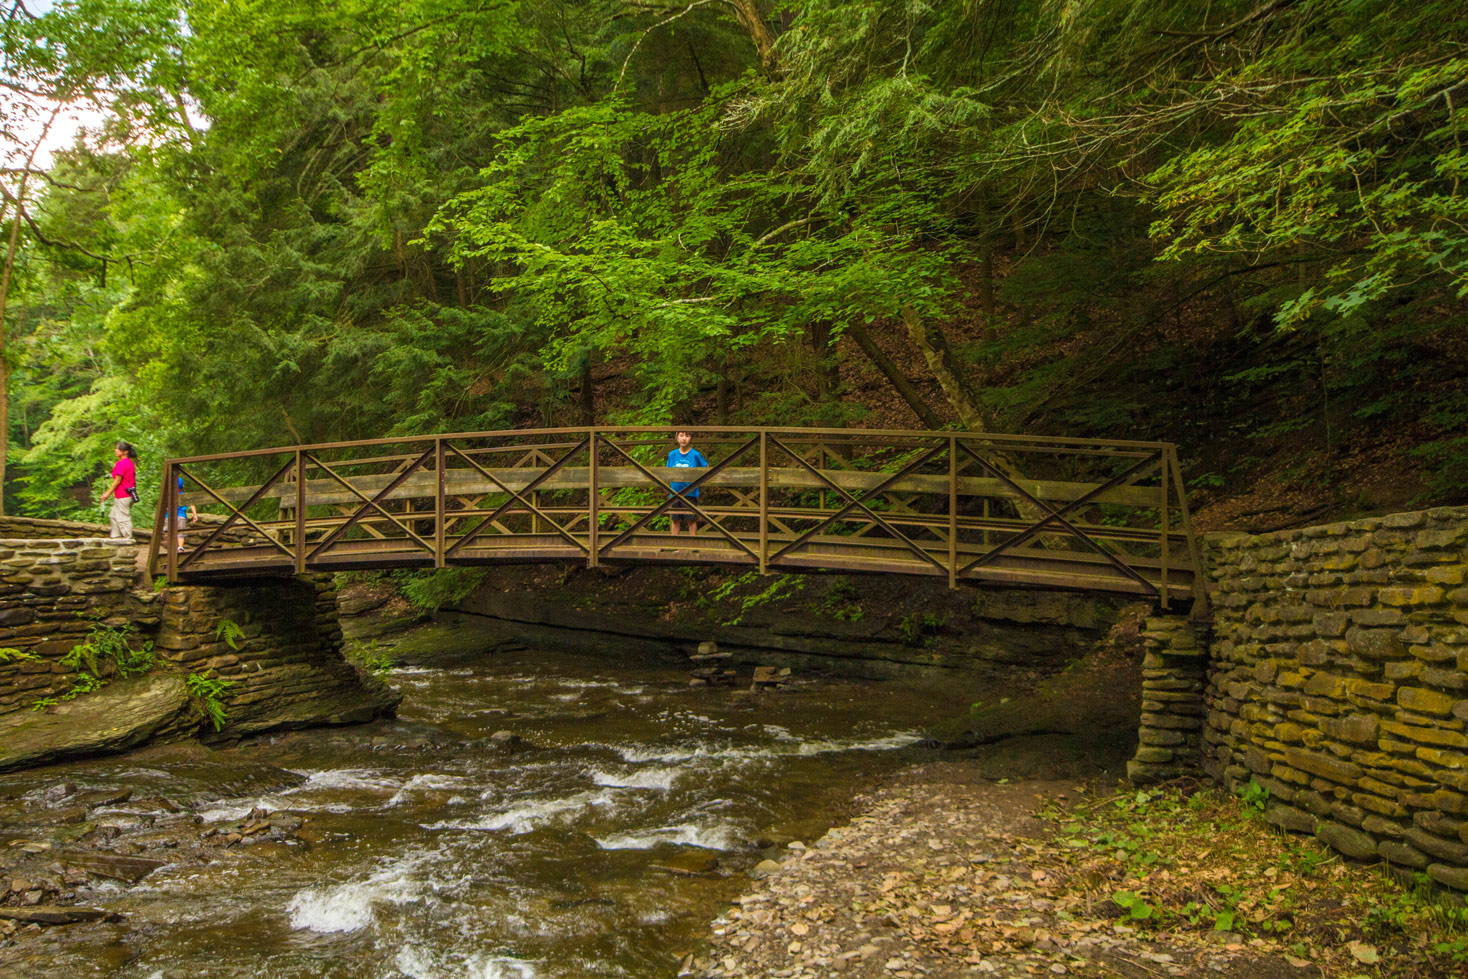 A young boys stands on a metal bridge over a rushing creek Upper Wolfs Creek in Letchworth State Park in New York State